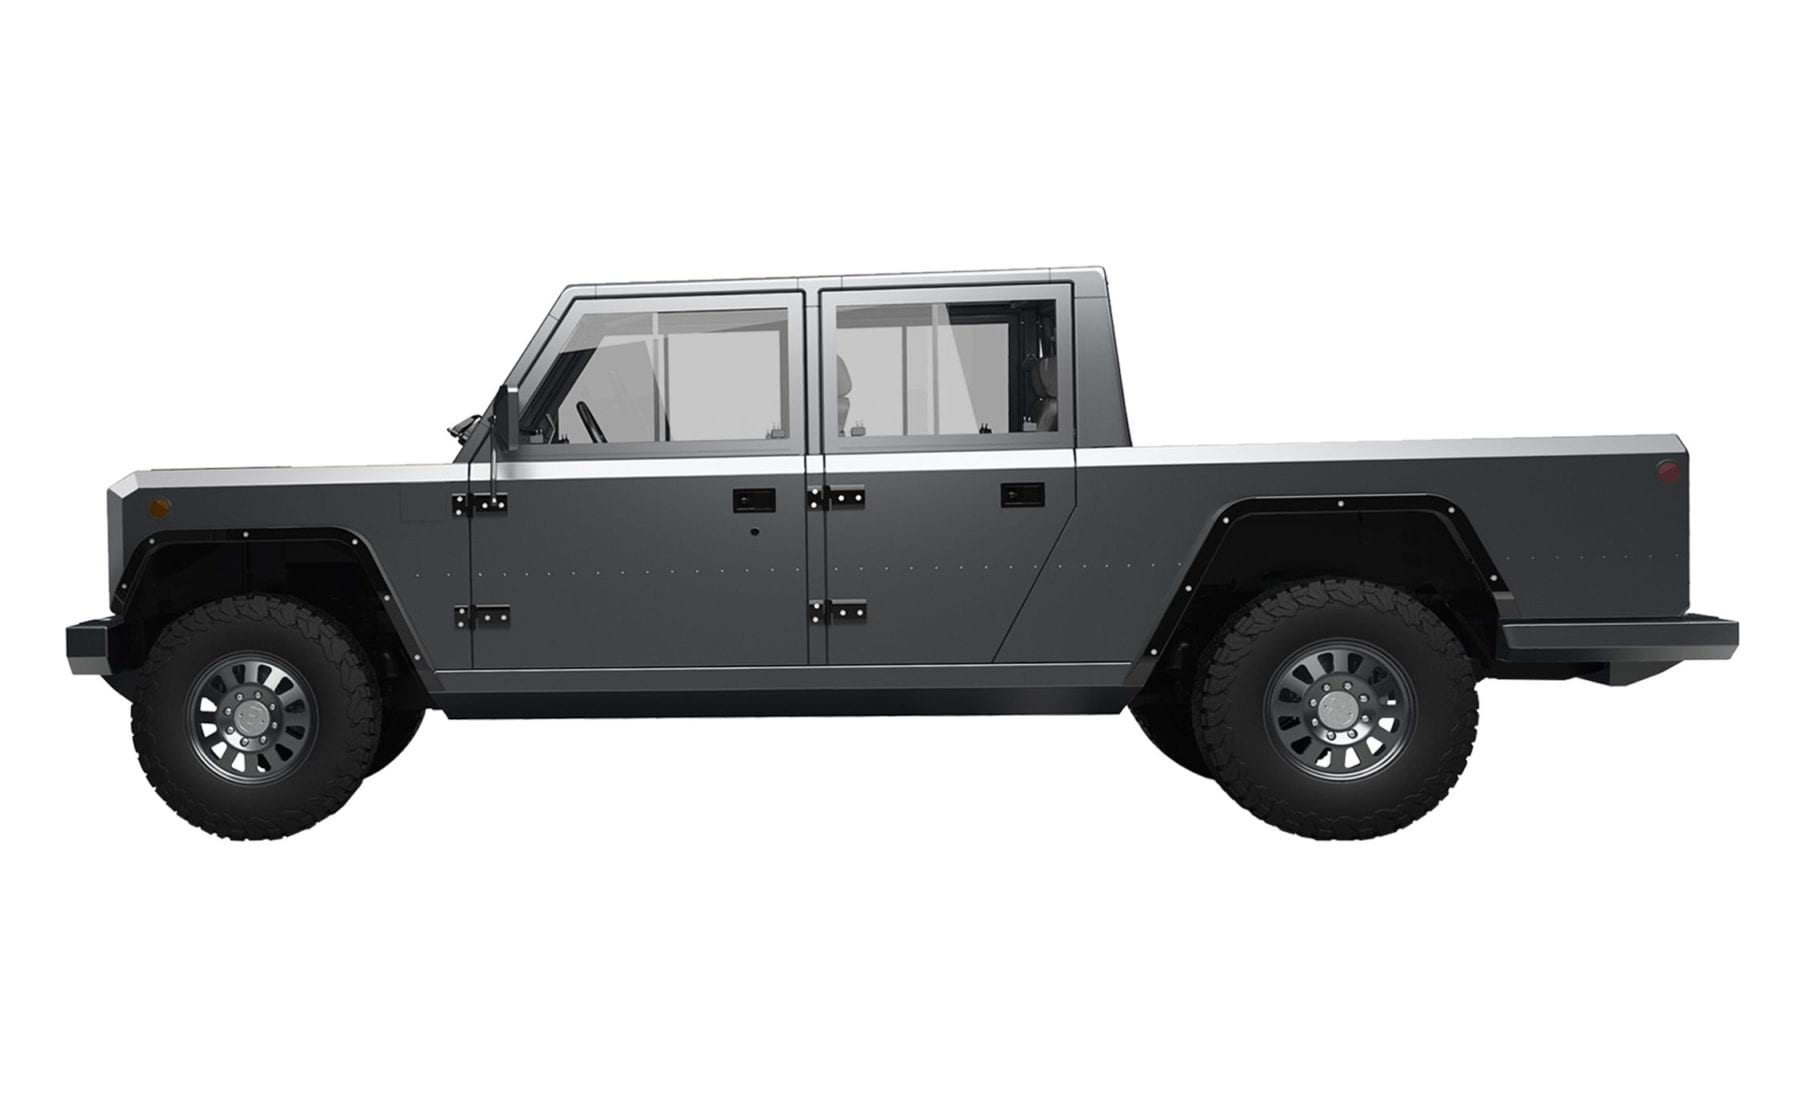 Both The B1 And B2 Are Extremely Rugged Simplified Vehicles These Electric For Next Gen Of Jeep Hummer